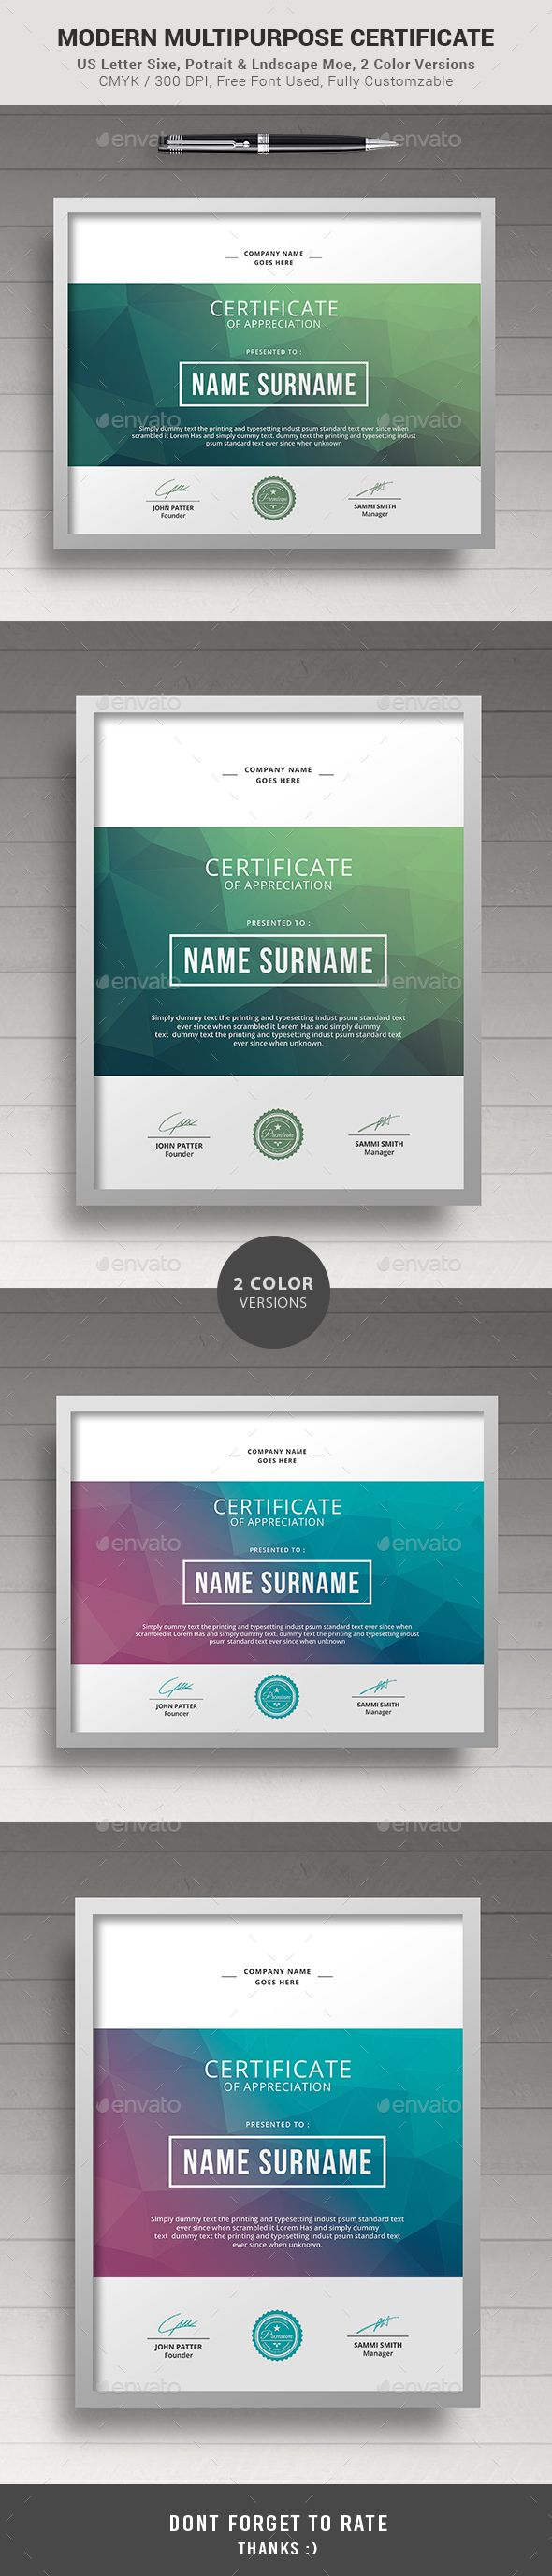 The 23 best Certificate images on Pinterest | Award certificates ...